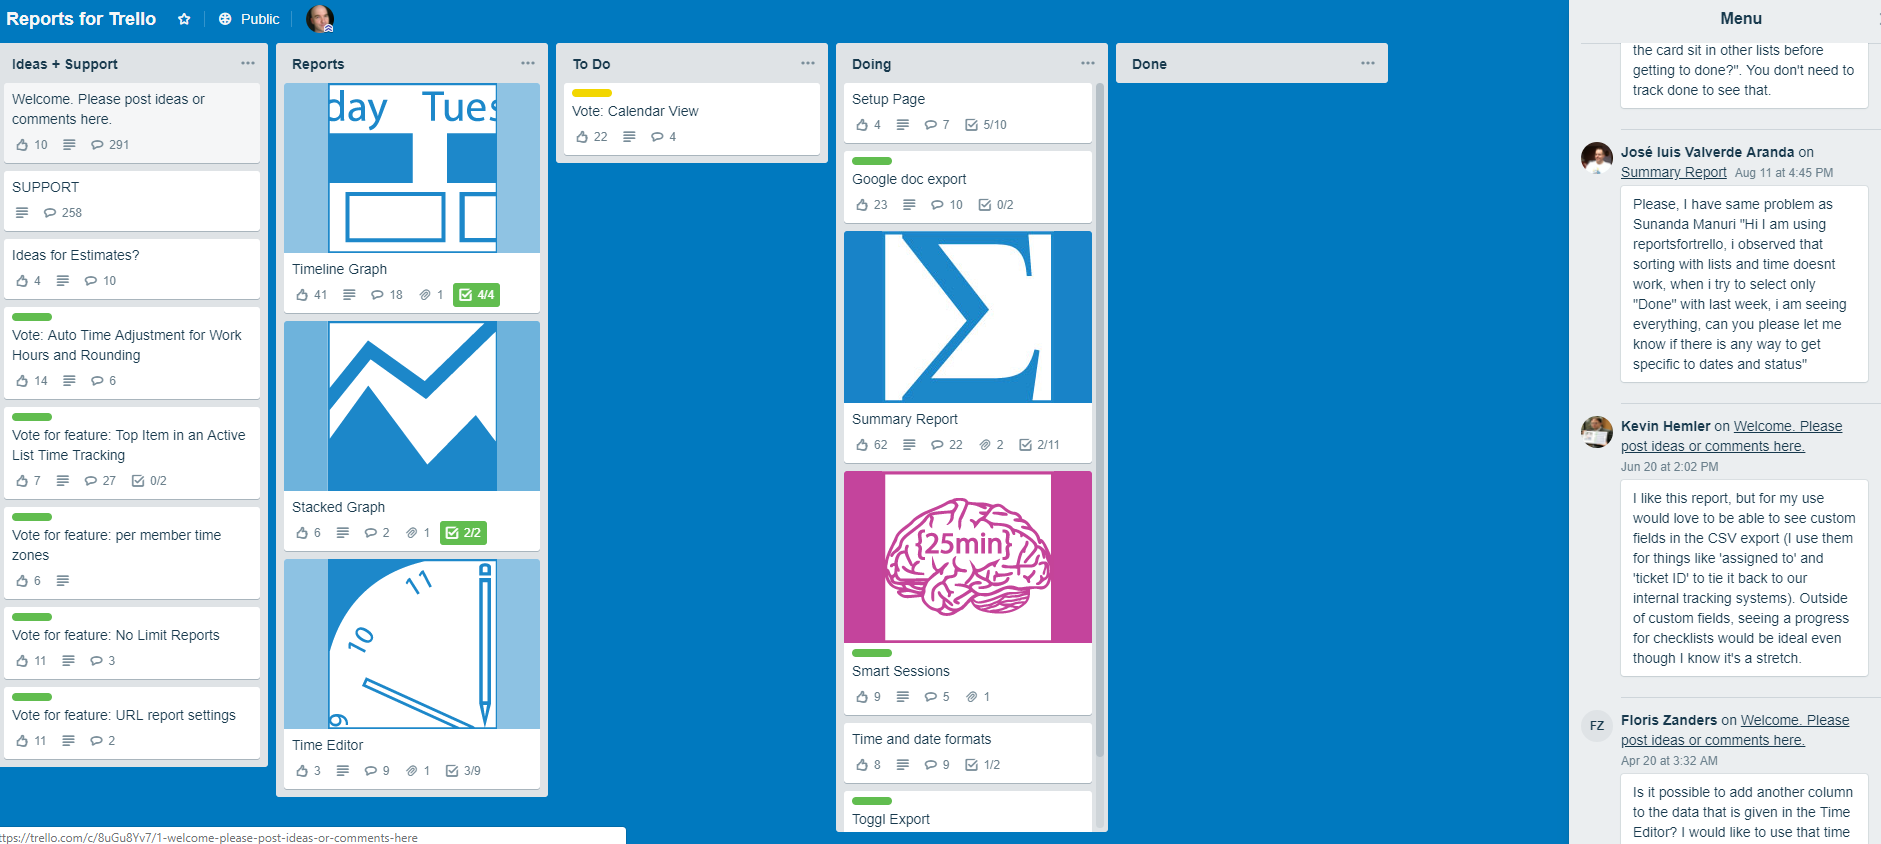 Example of public Trello board for new reporting tools